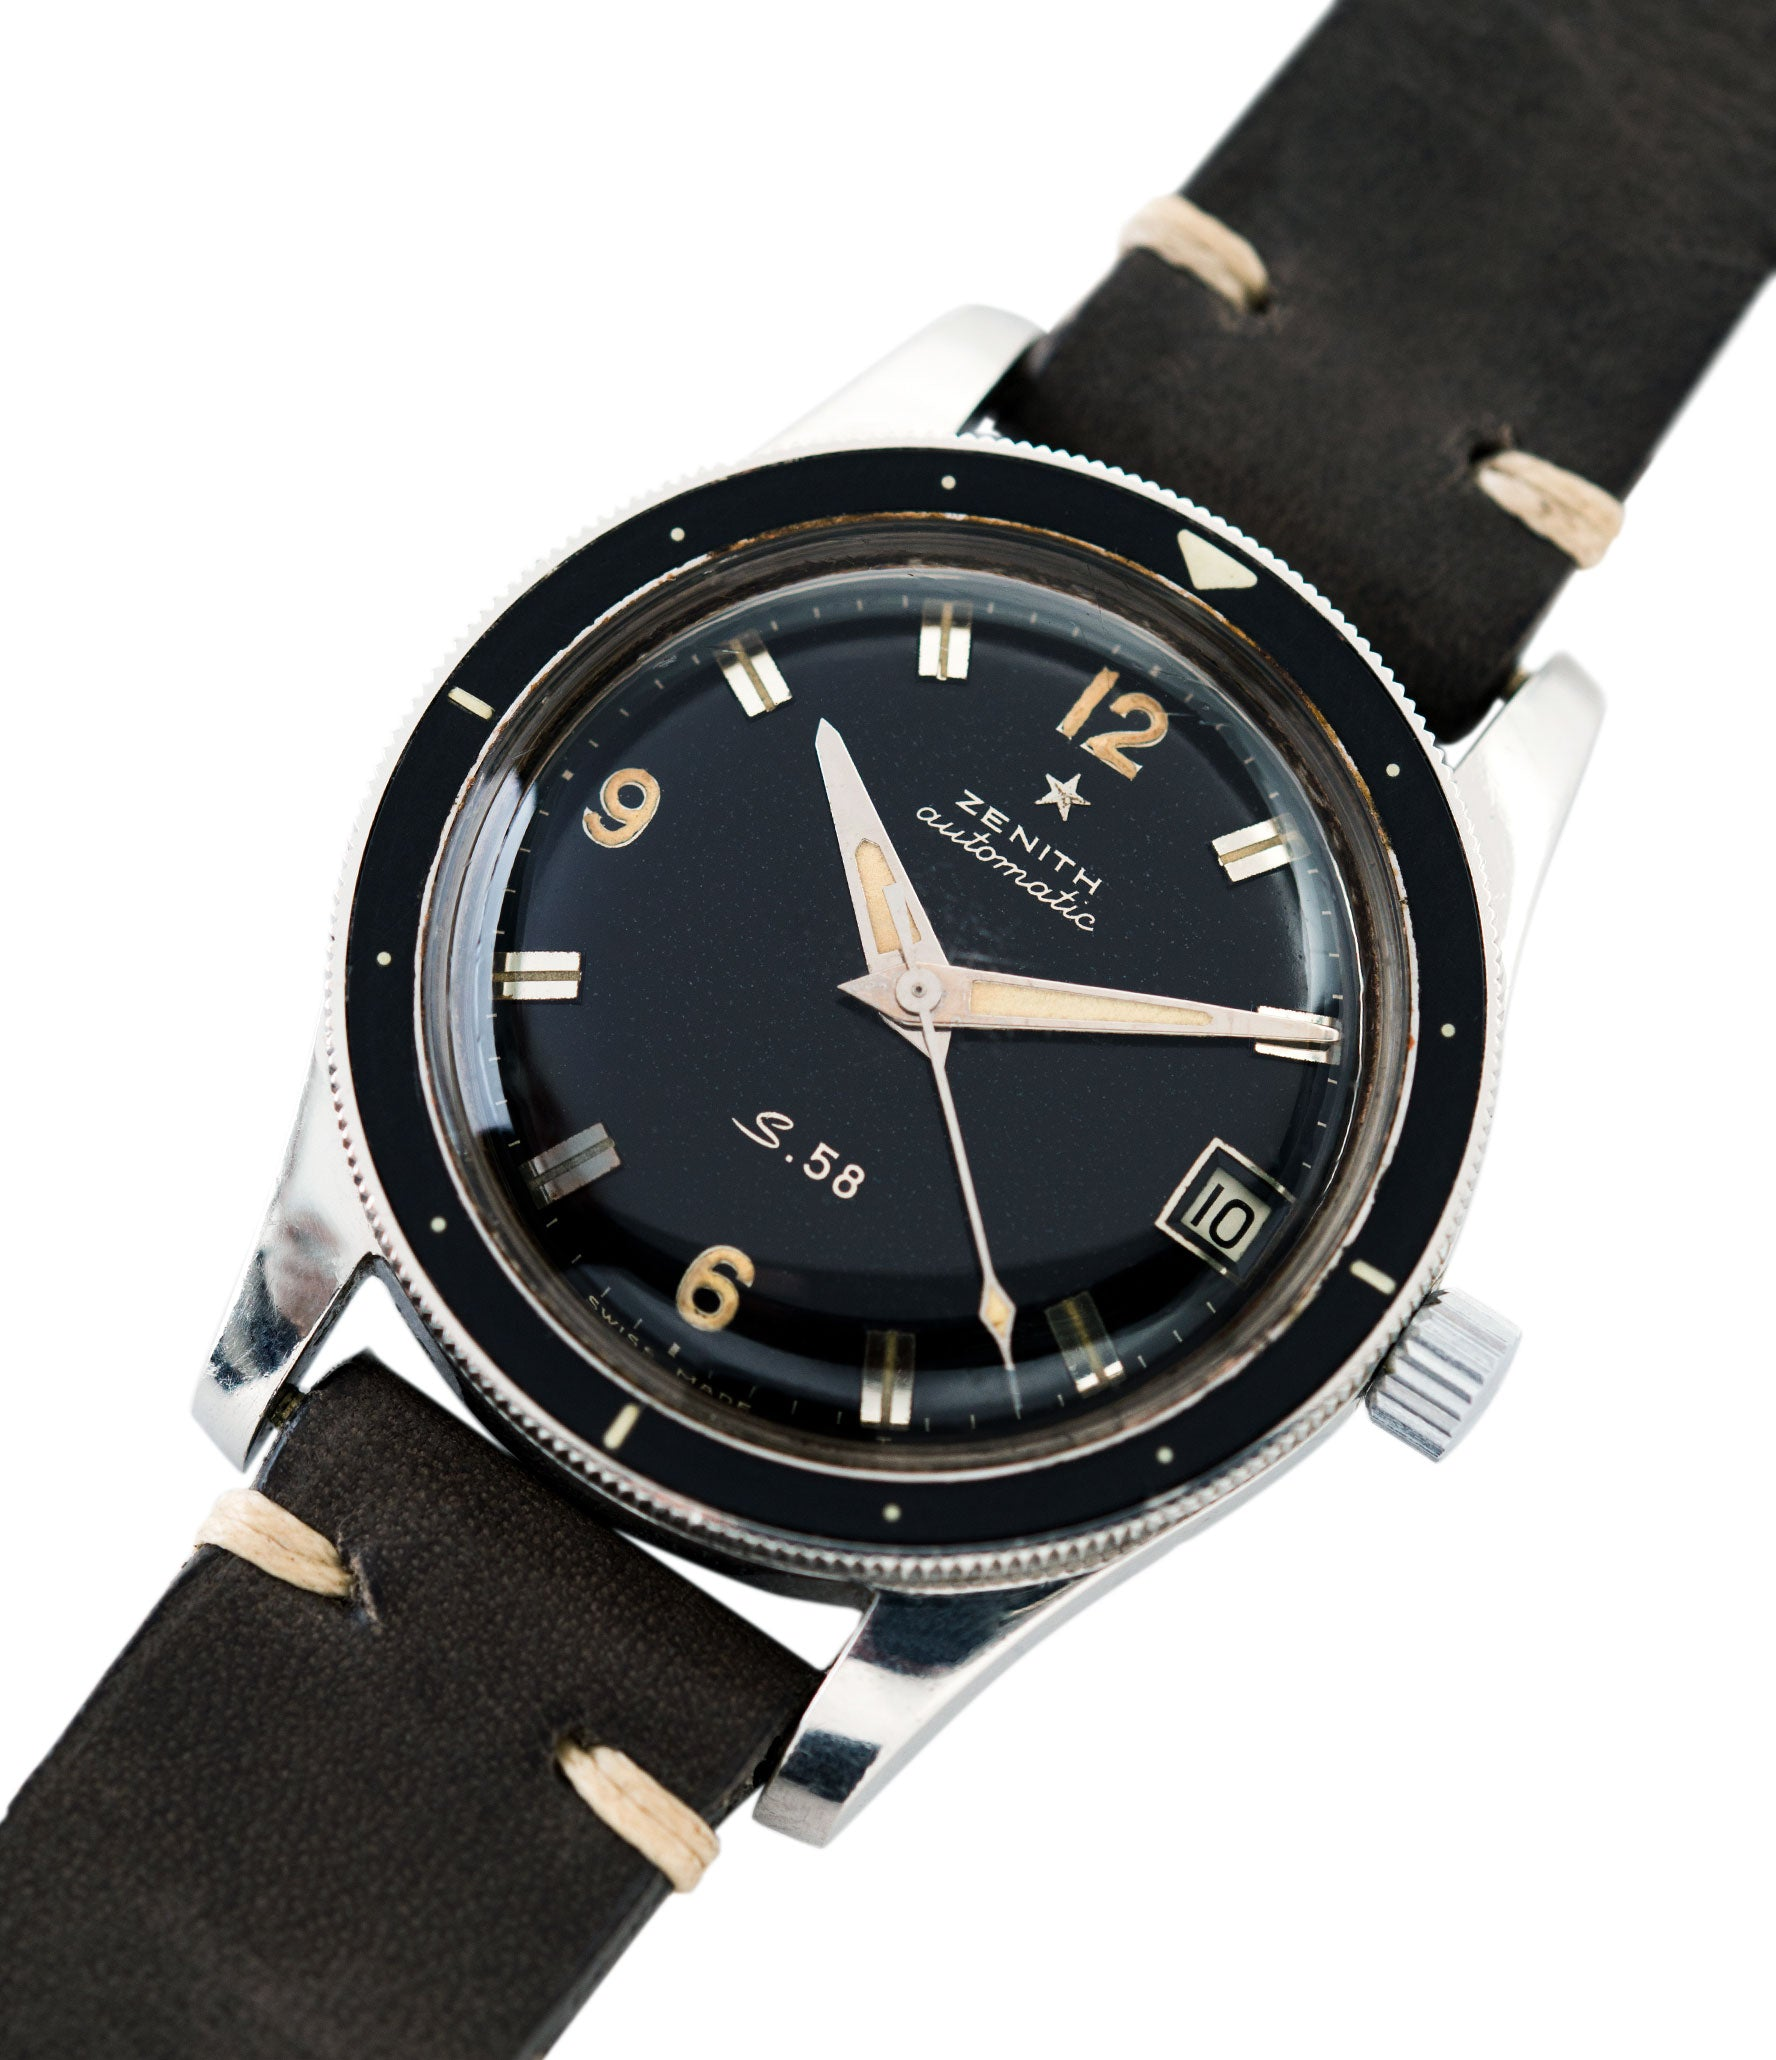 for sale Zenith S.58 Cal 2542 PC vintage steel divers watch bakelite bezel for sale online at A Collected Man London UK specialist rare vintage watches